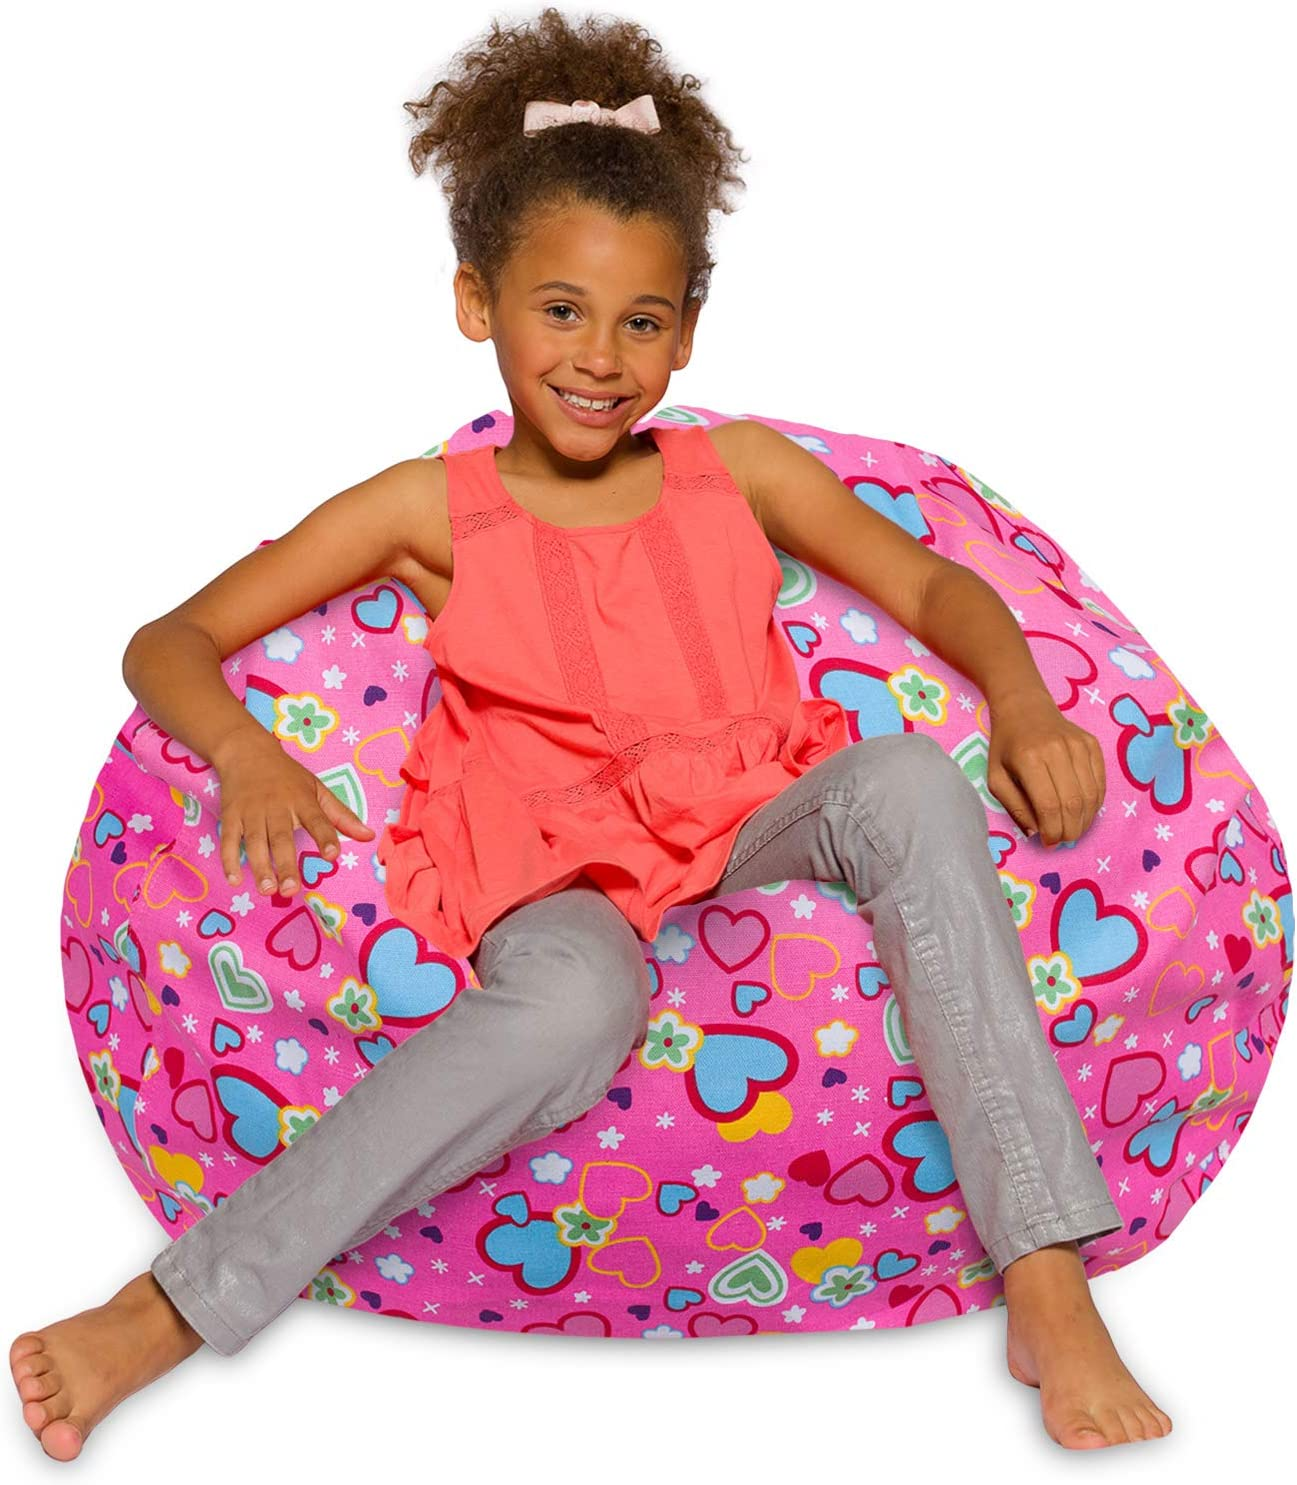 Posh Creations Bean Bag Chair for Kids, Teens, and Adults Includes Removable and Machine Washable Cover, 38in - Large, Canvas Multi-colored Hearts on Pink